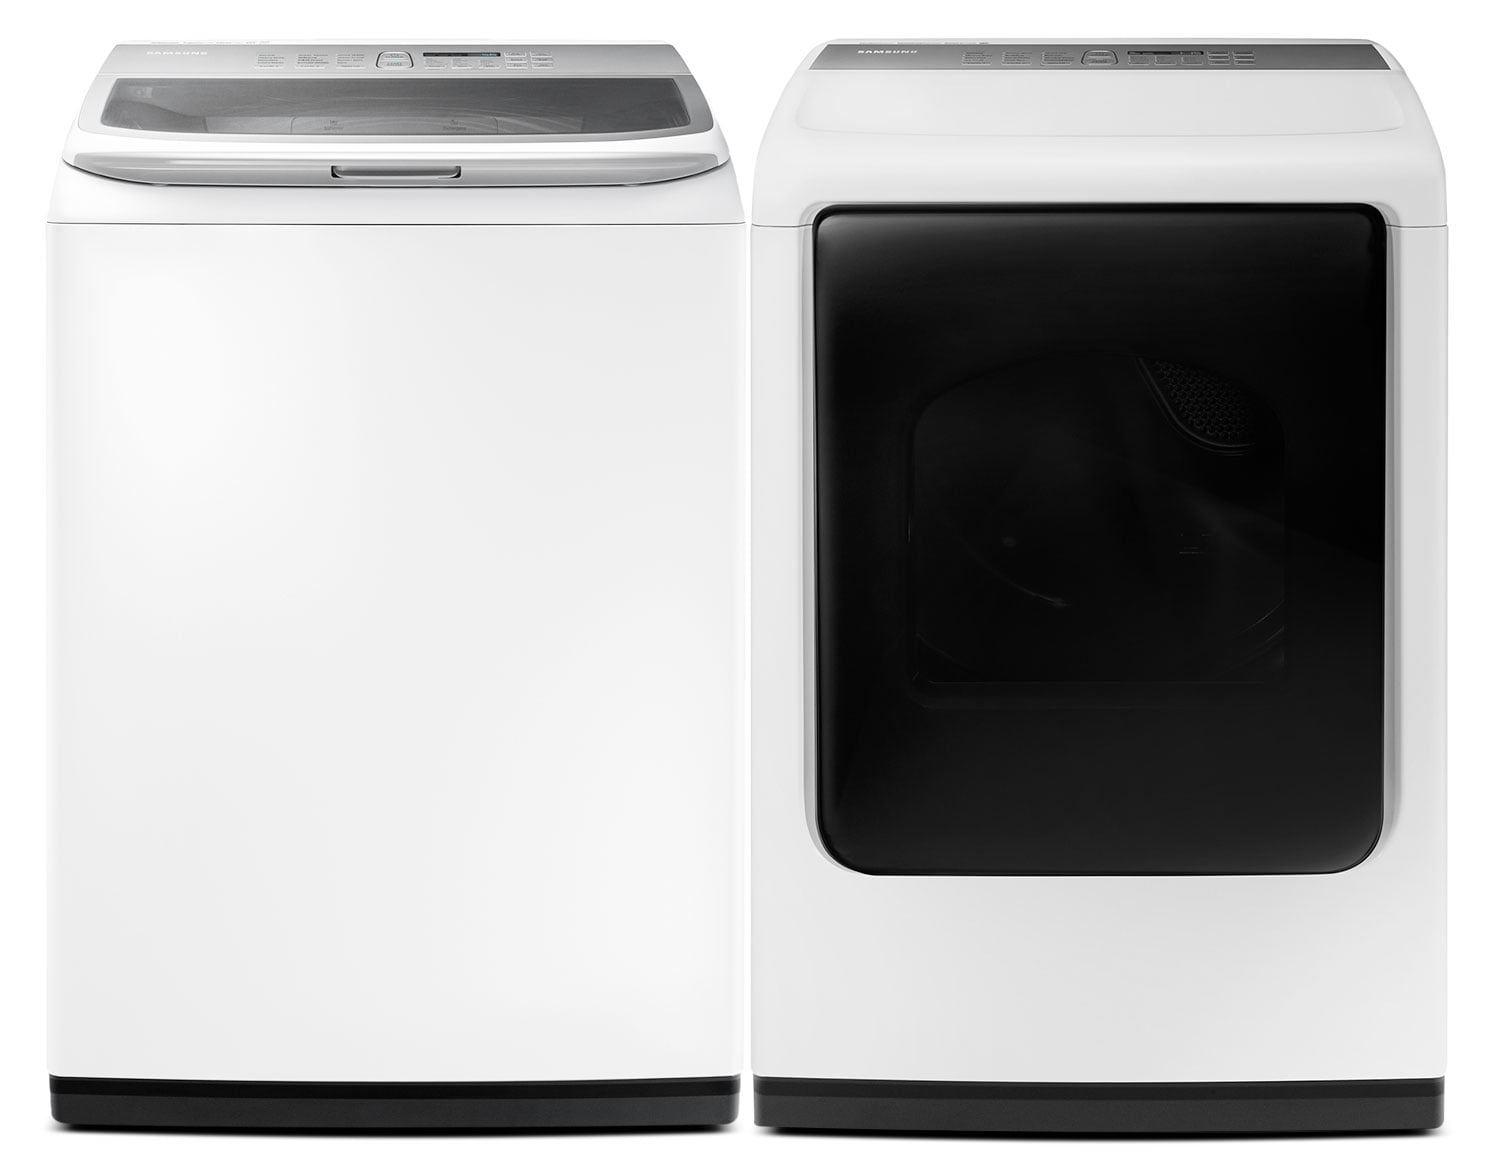 Samsung 5.2 Cu. Ft. Top-Load Washer and 7.5 Cu. Ft. Electric Dryer – White